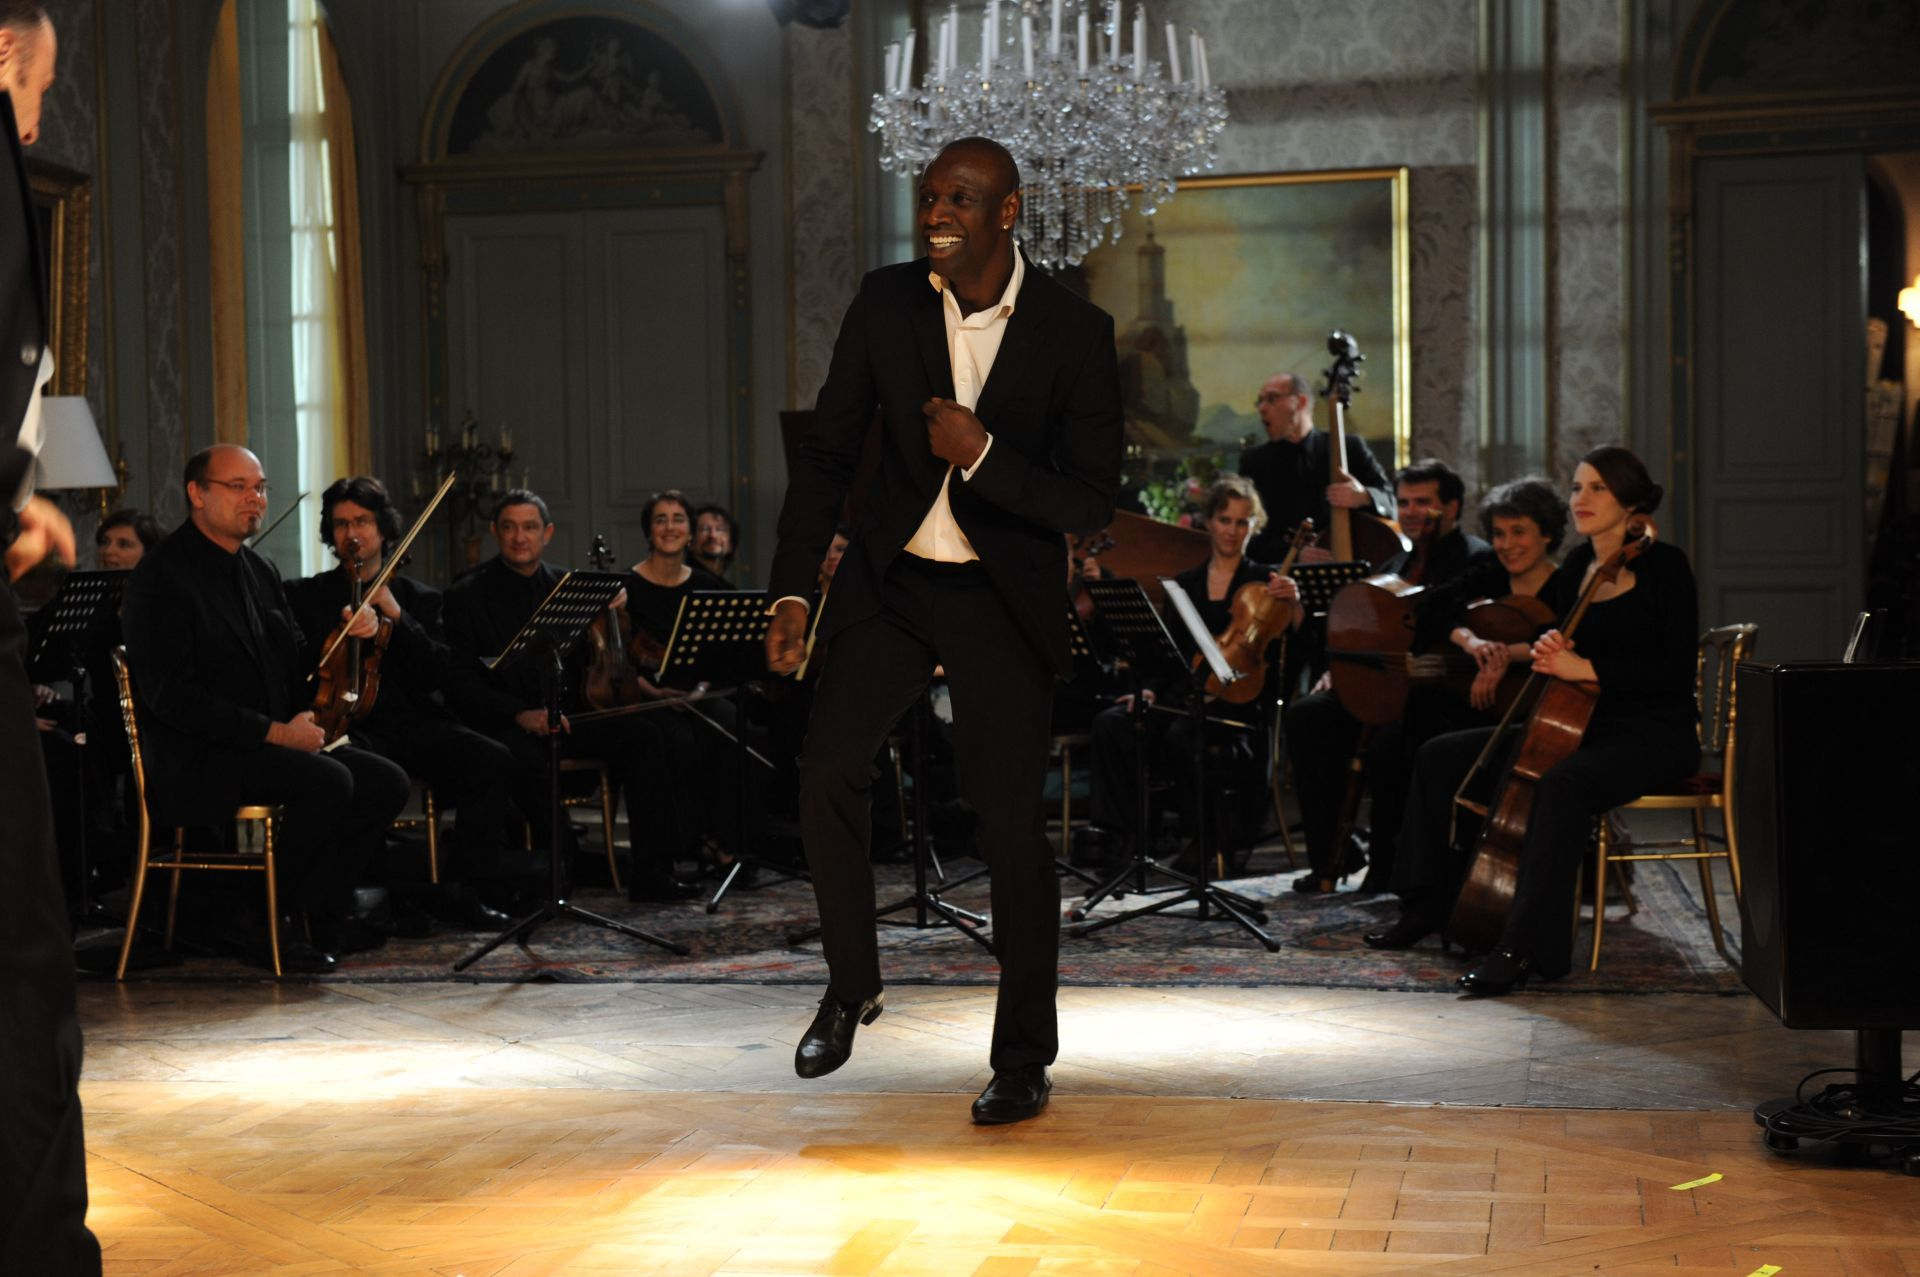 Omar Sy, Le Capriccio Français, and Philippe Le Fevre in Intouchables (2011)